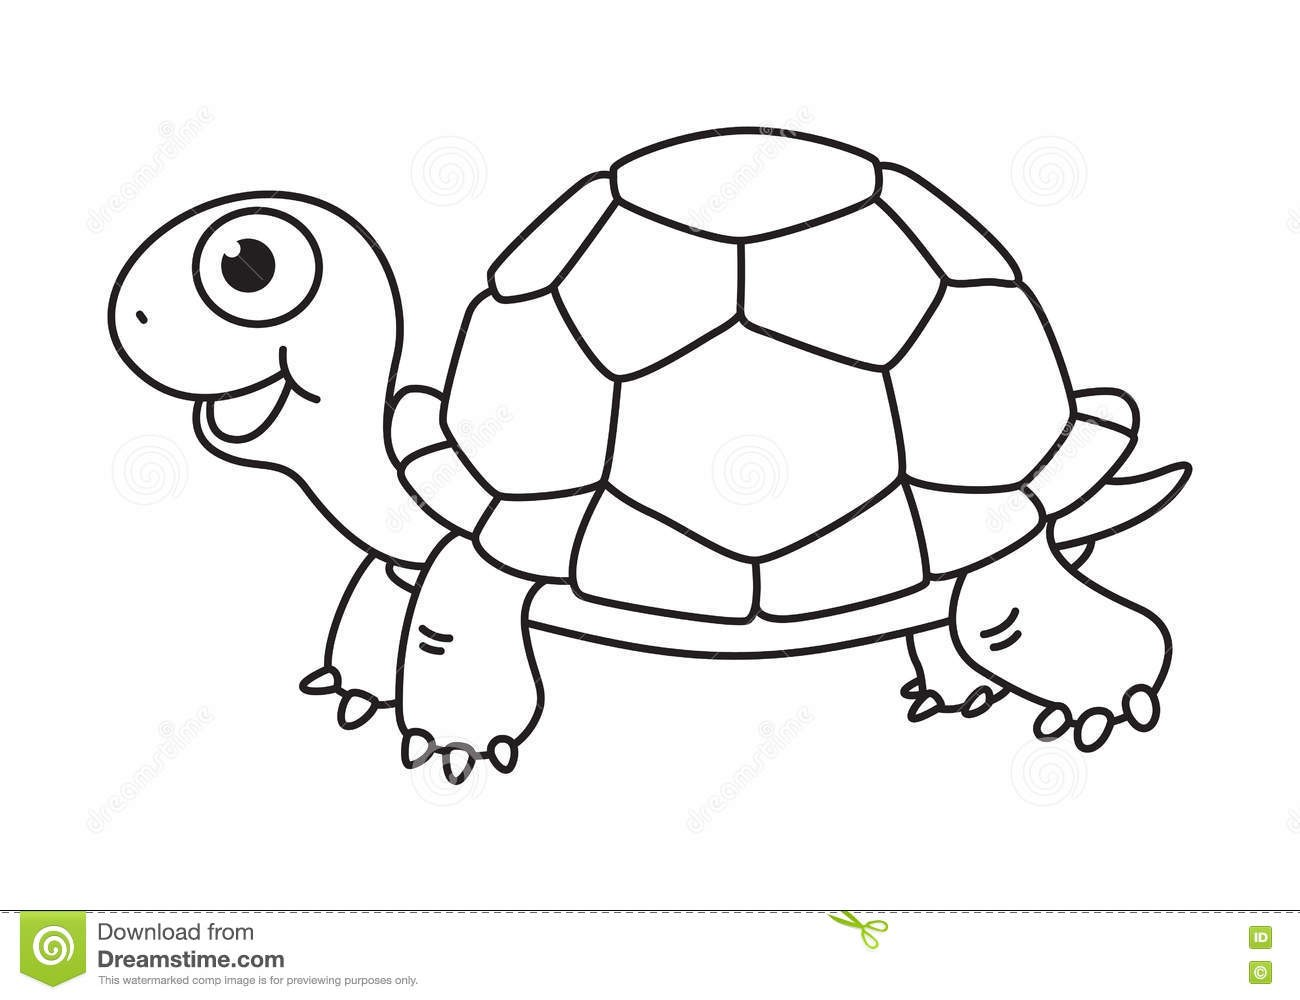 Turtle black and white clipart 2 » Clipart Station.